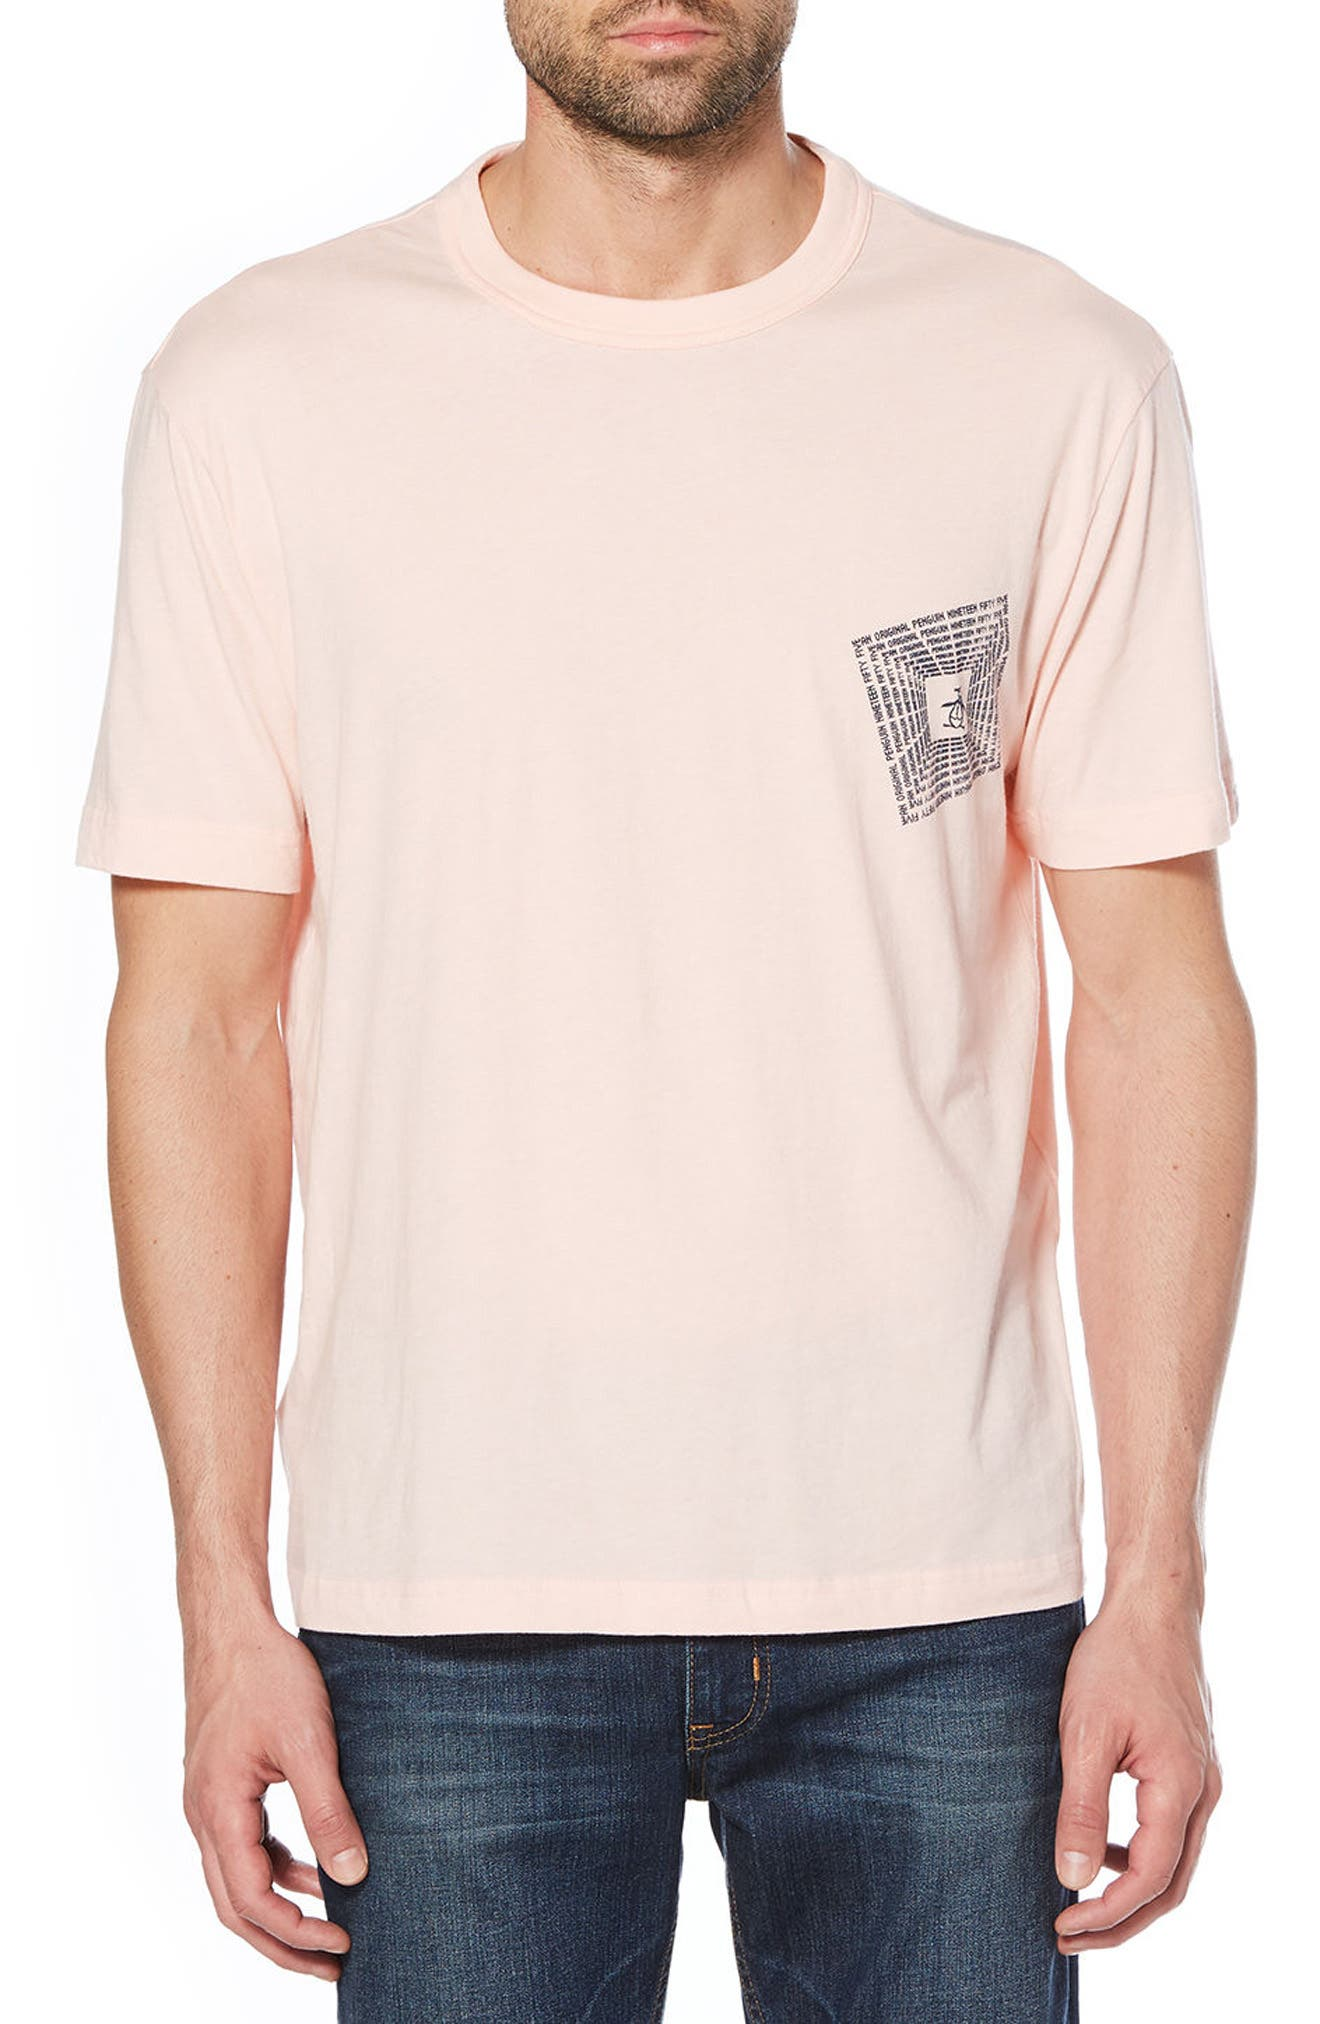 Original Penguin Optical Graphic T-Shirt